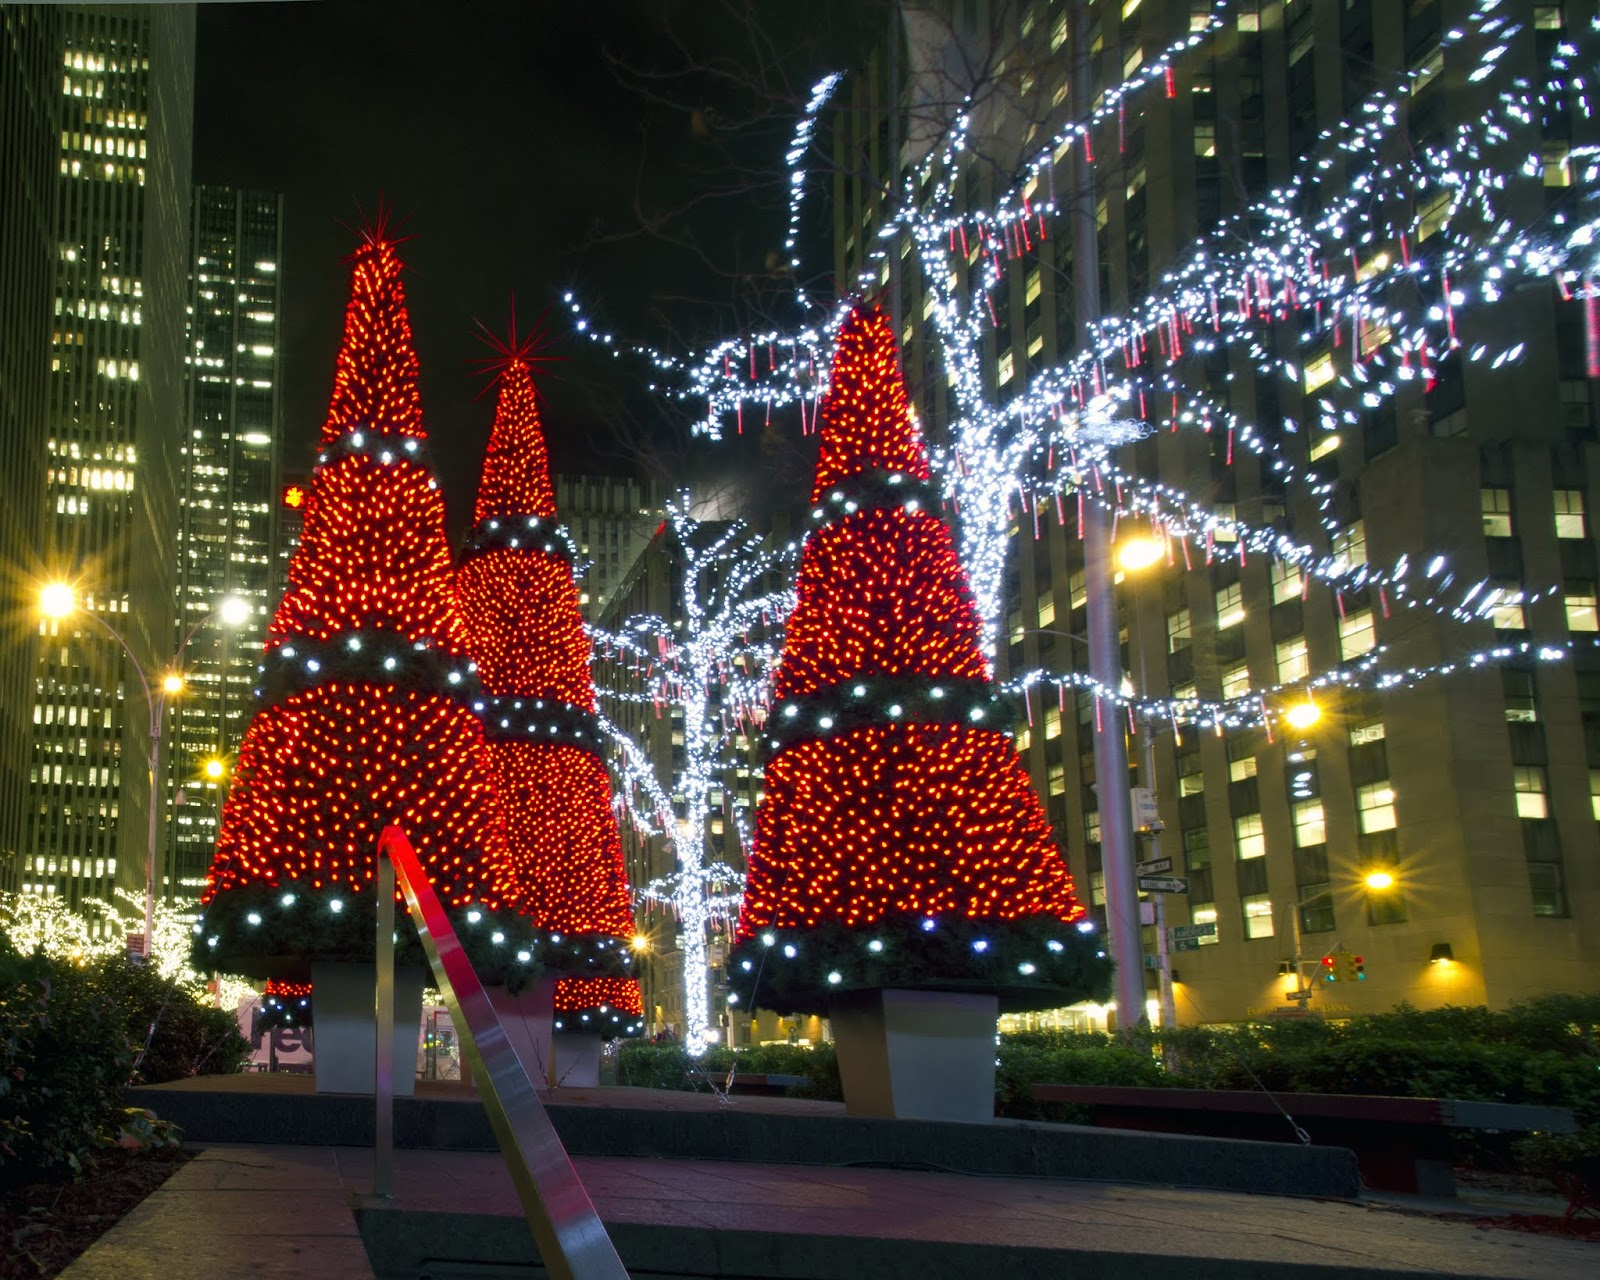 Genickstarre NYC: Weihnachten in New York